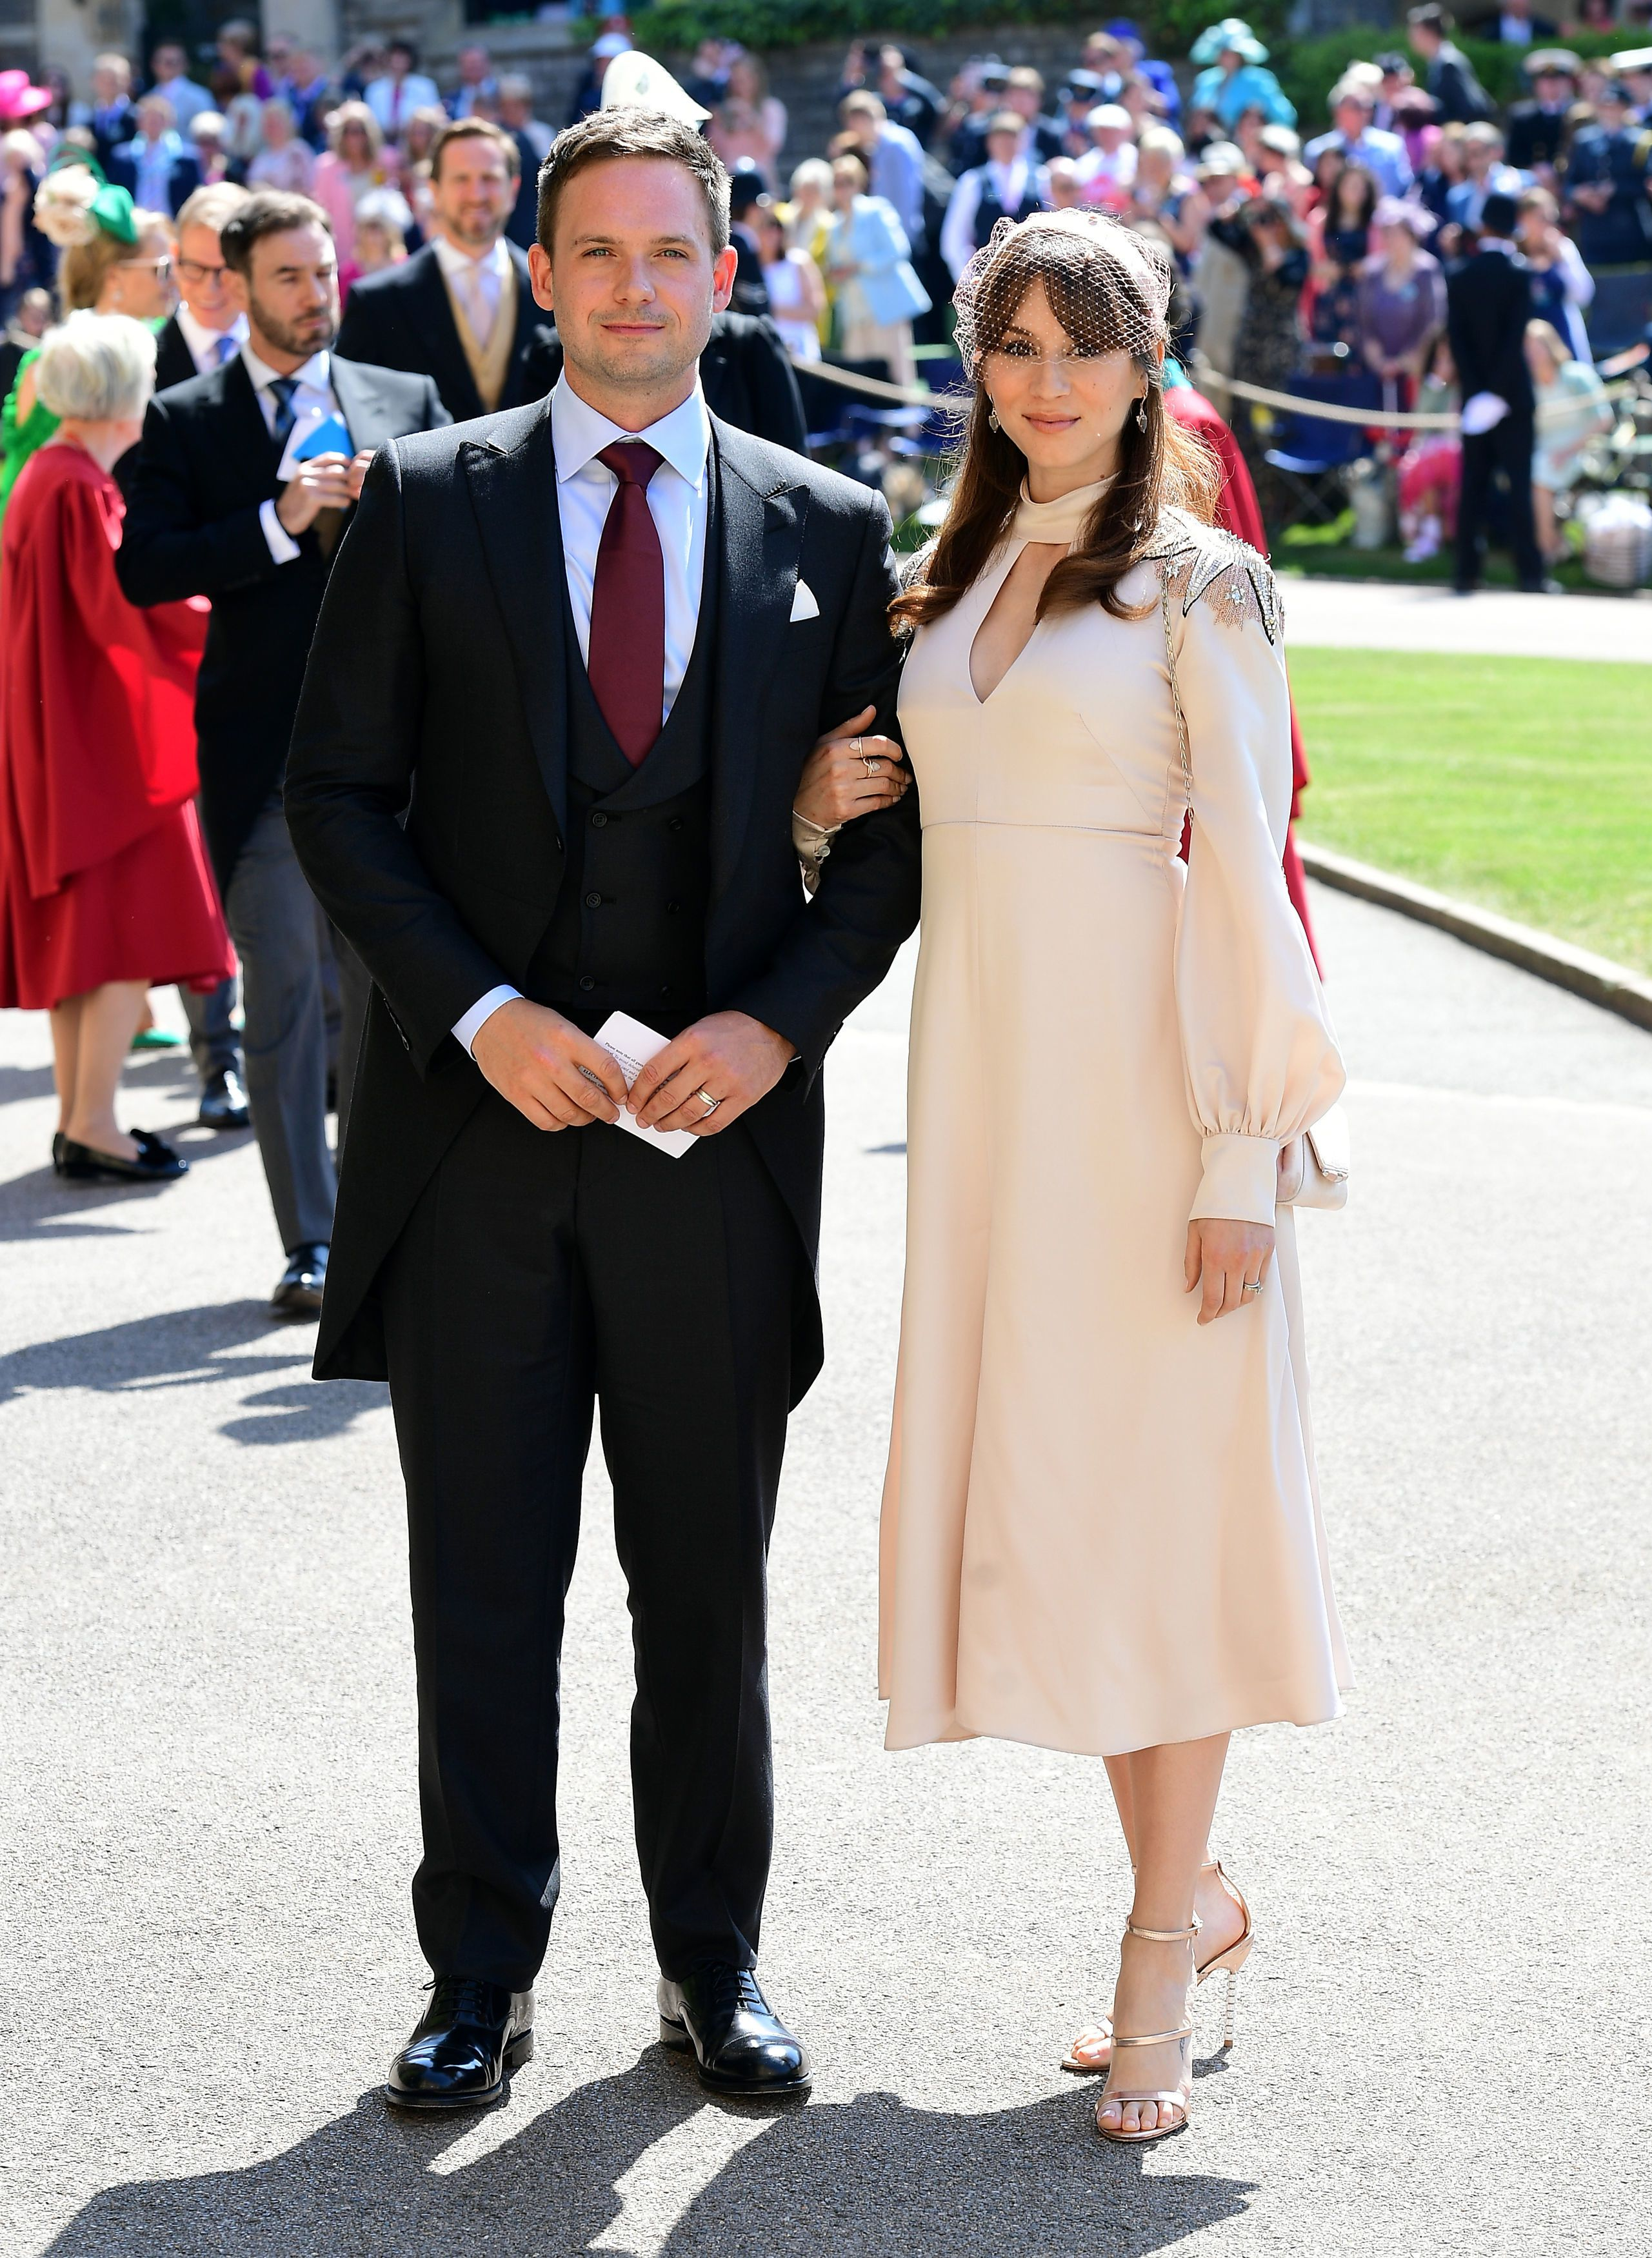 e8757393 Royal Wedding Best Dressed List - Prince Harry and Meghan Markle Wedding  Guest Style